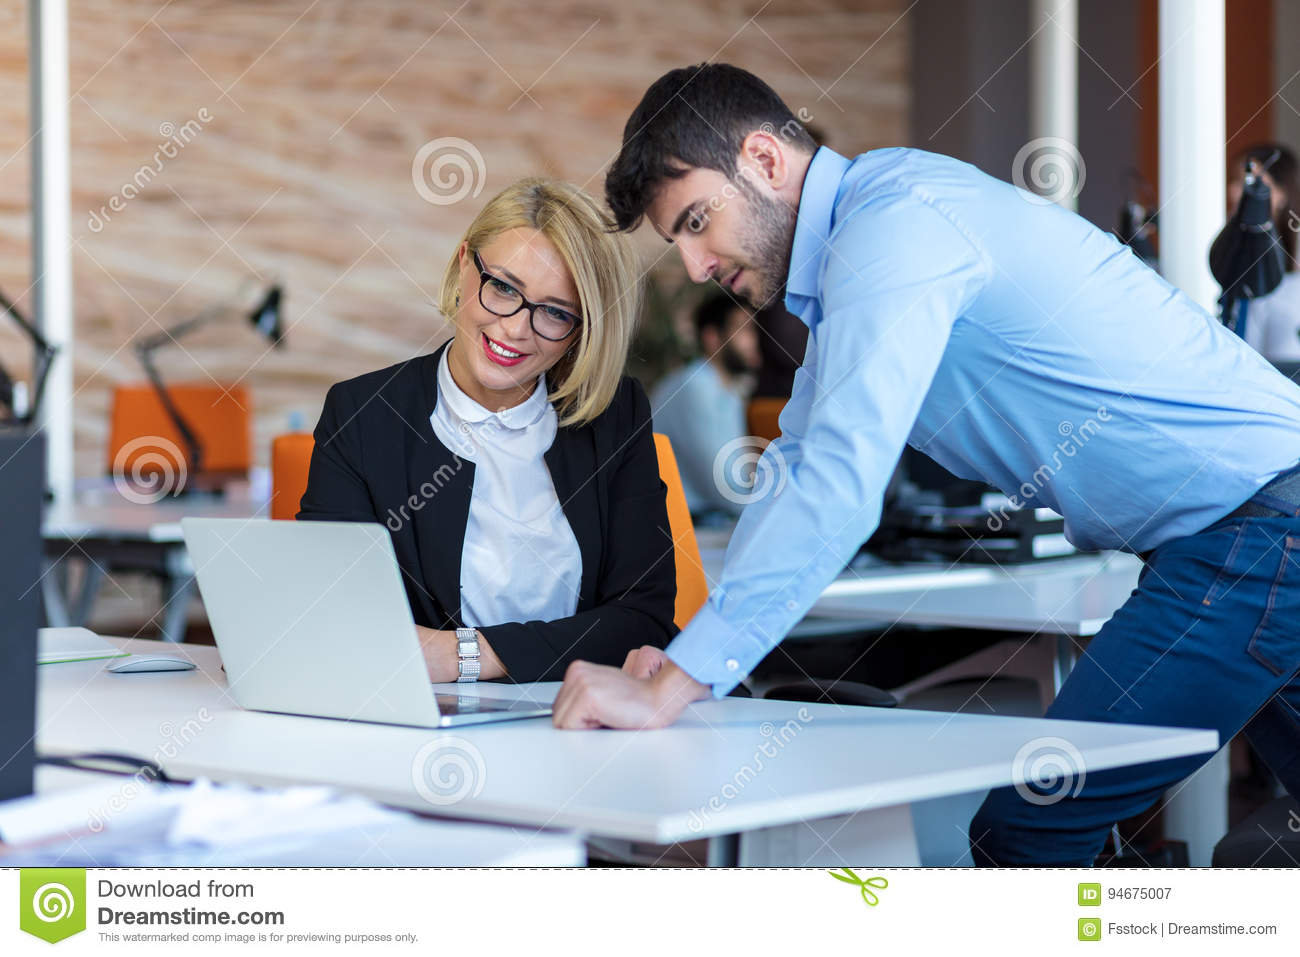 Colleagues chatting, sitting together at office table, smiling